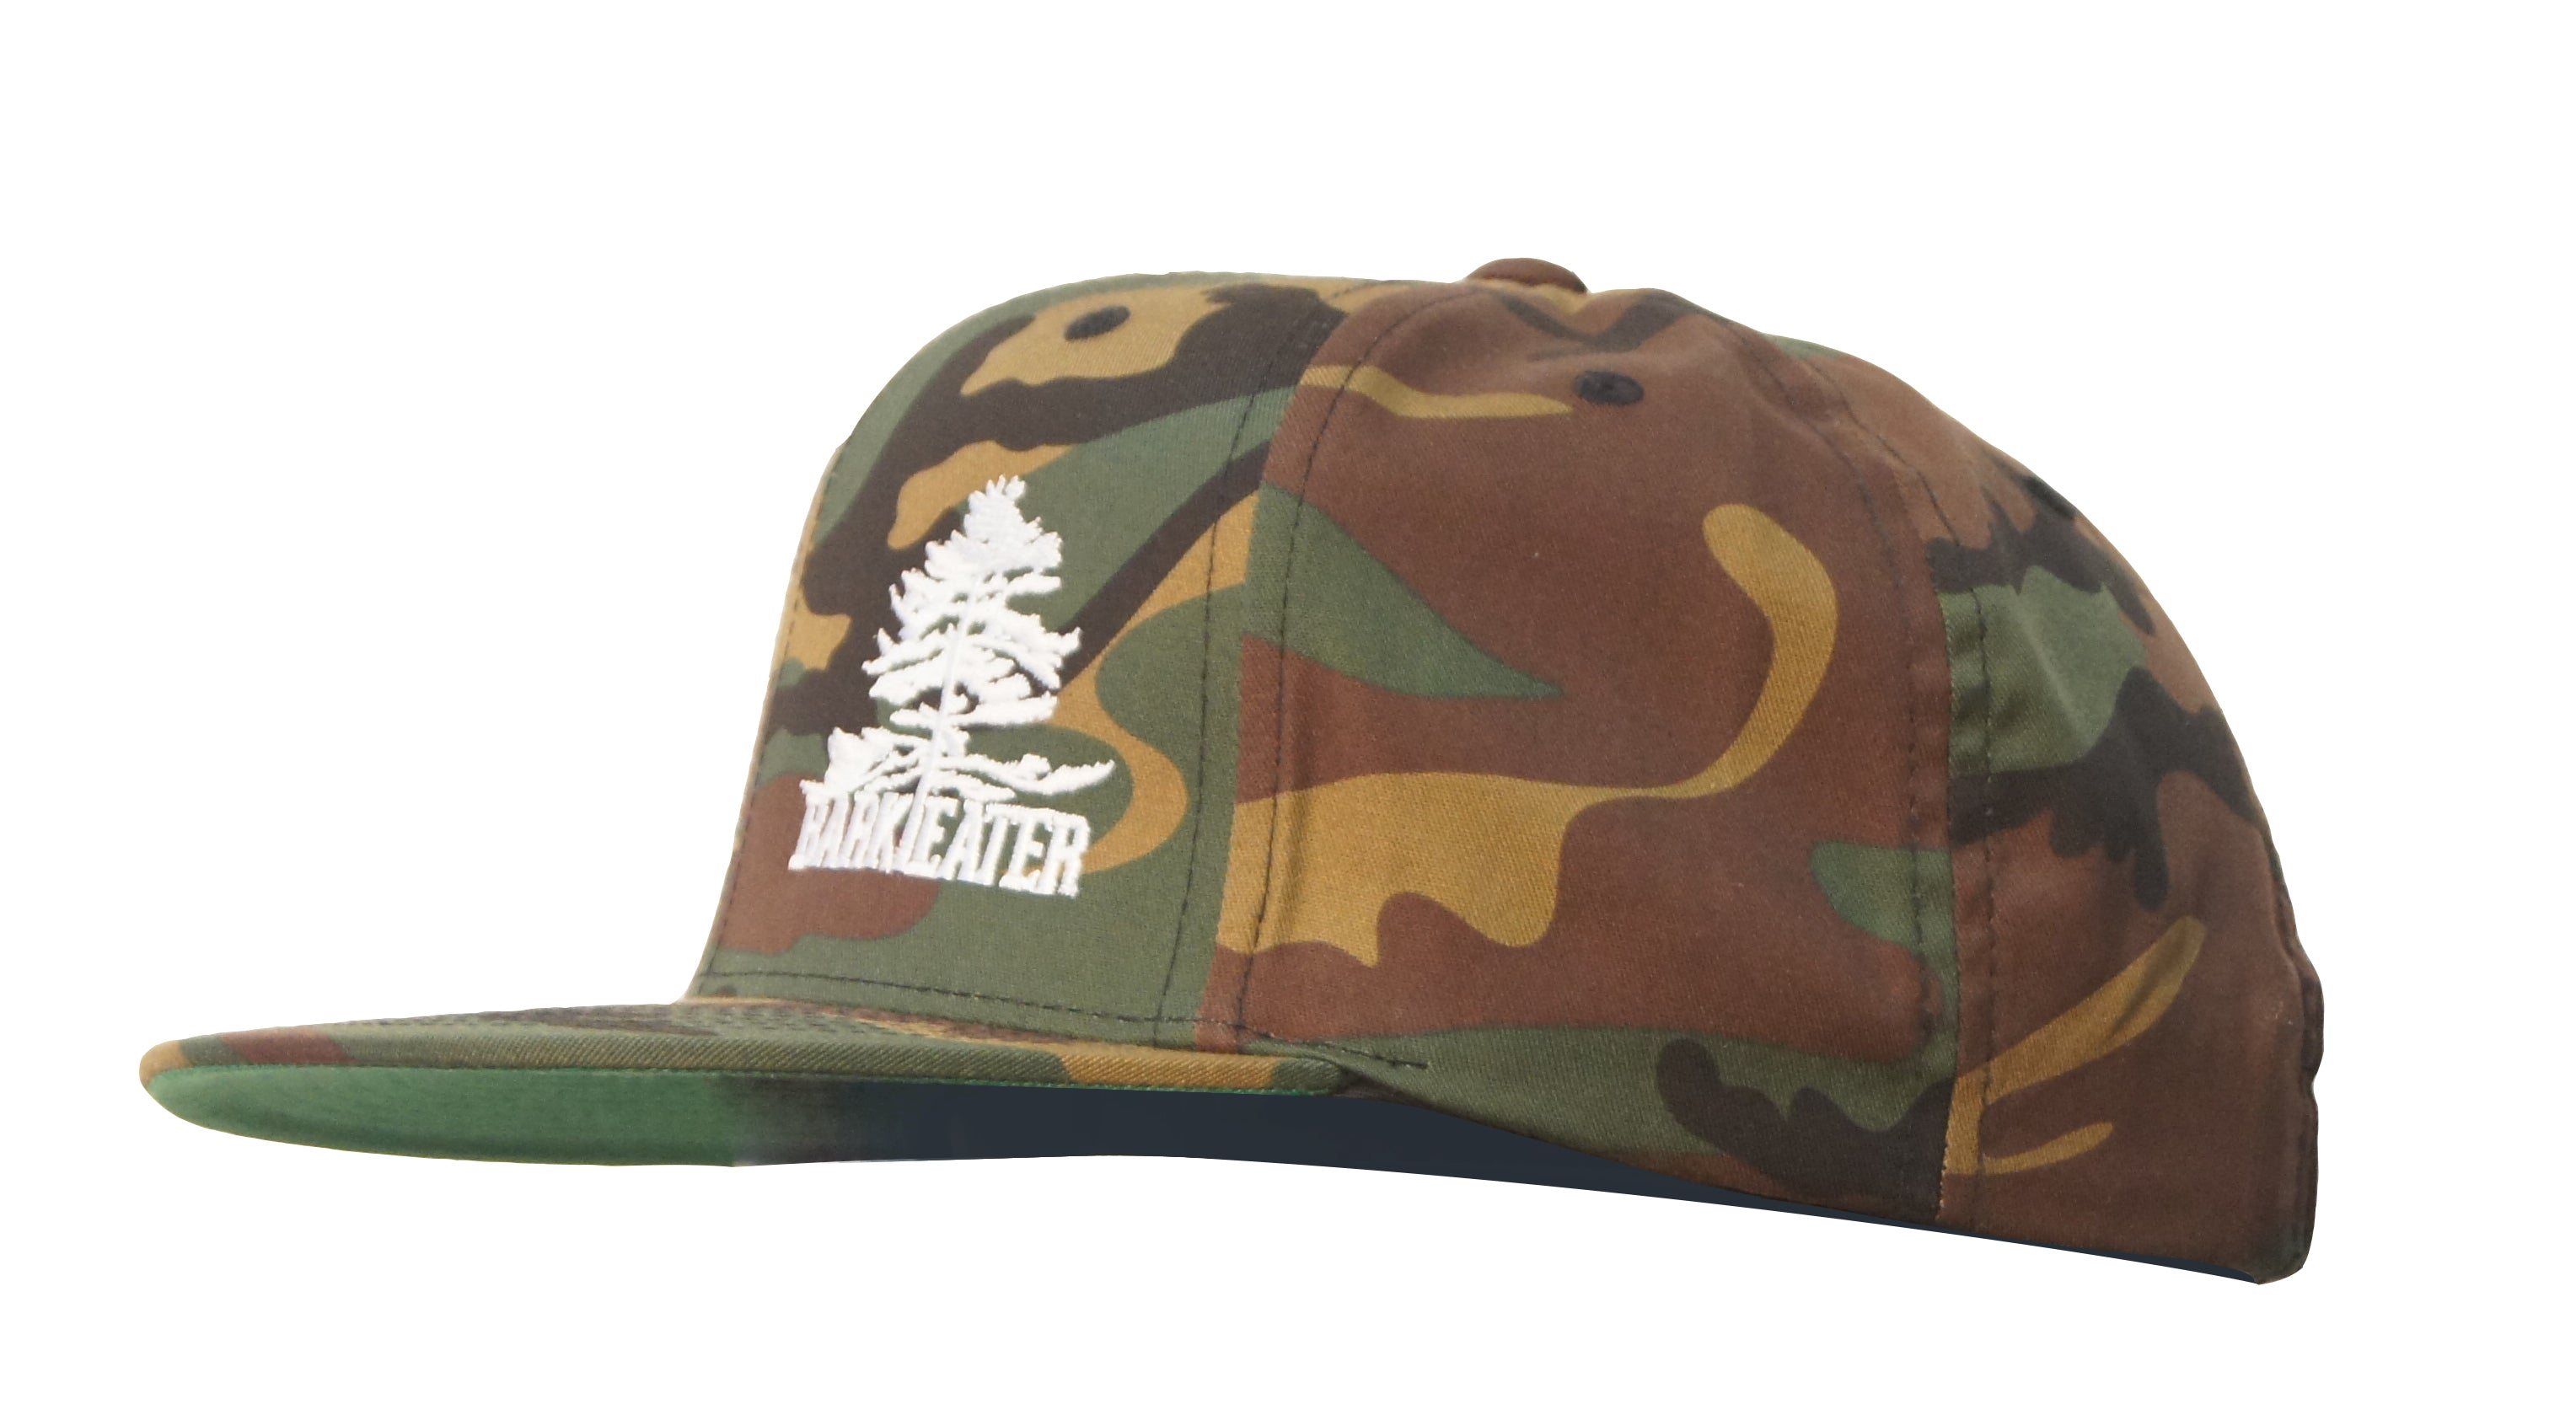 side view wool camo structured flat brim snapback hat with bark eater outfitter's logo (eastern white pine tree with the words Bark and Eater underneath). centered on the front right panel in white embroidery